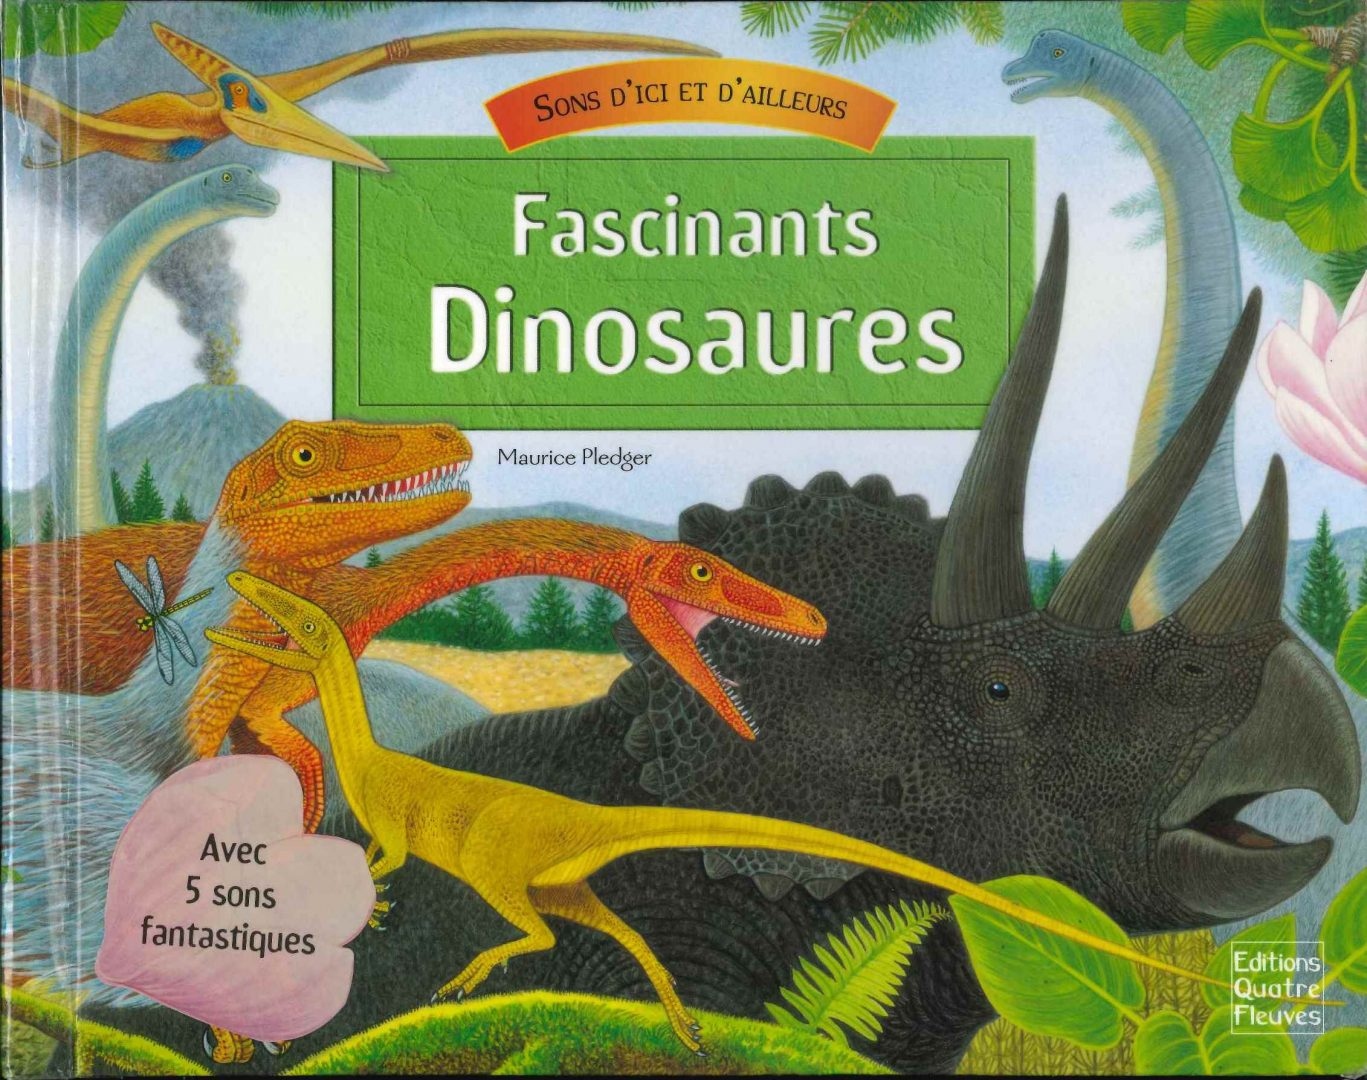 Fascinants dinosaures (Maurice Pledger)